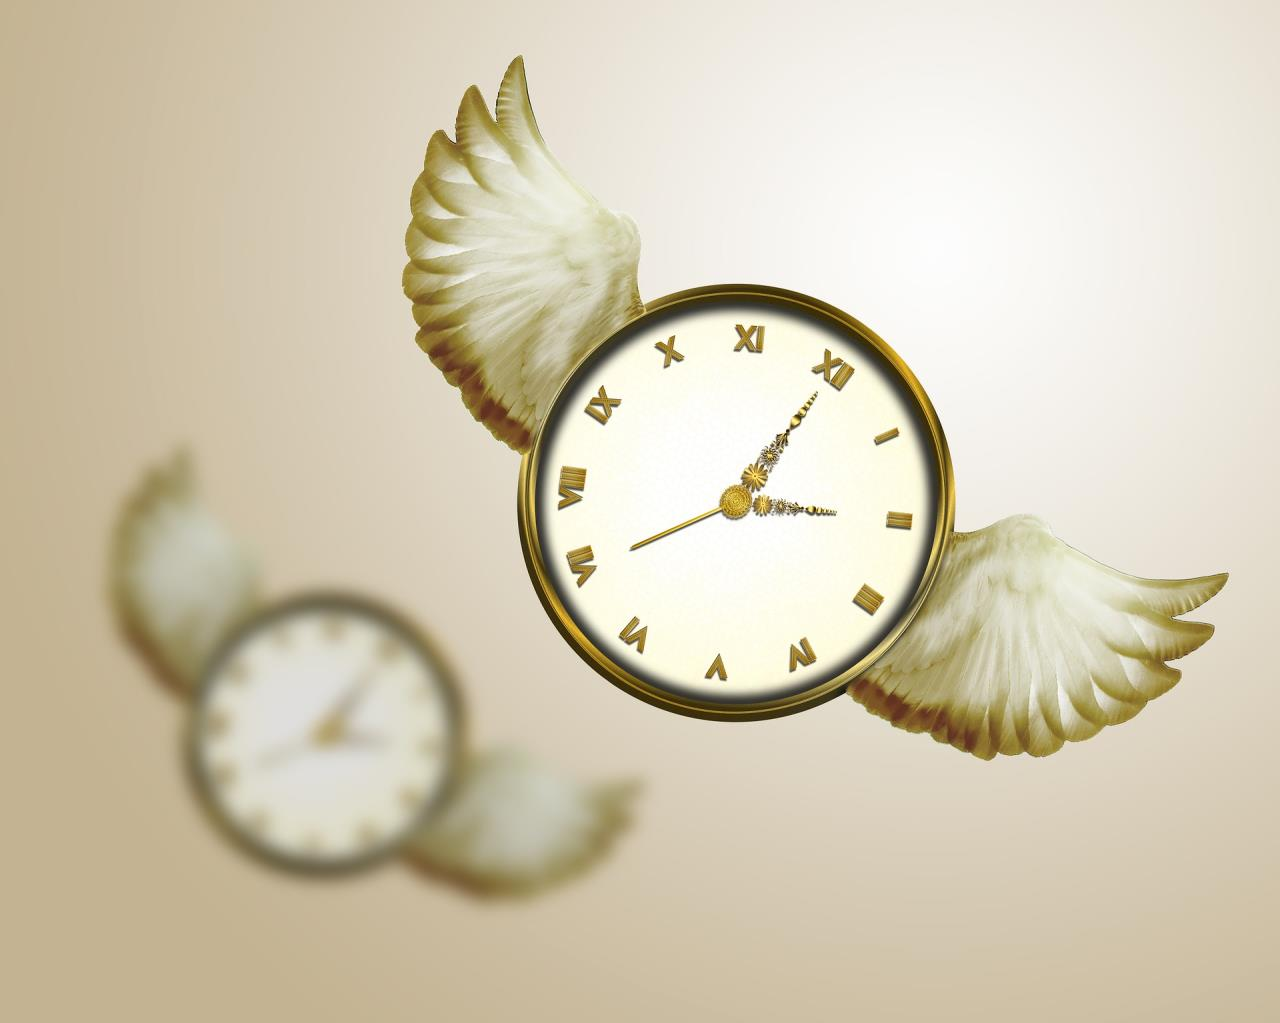 Image of clock with wings and its reflection